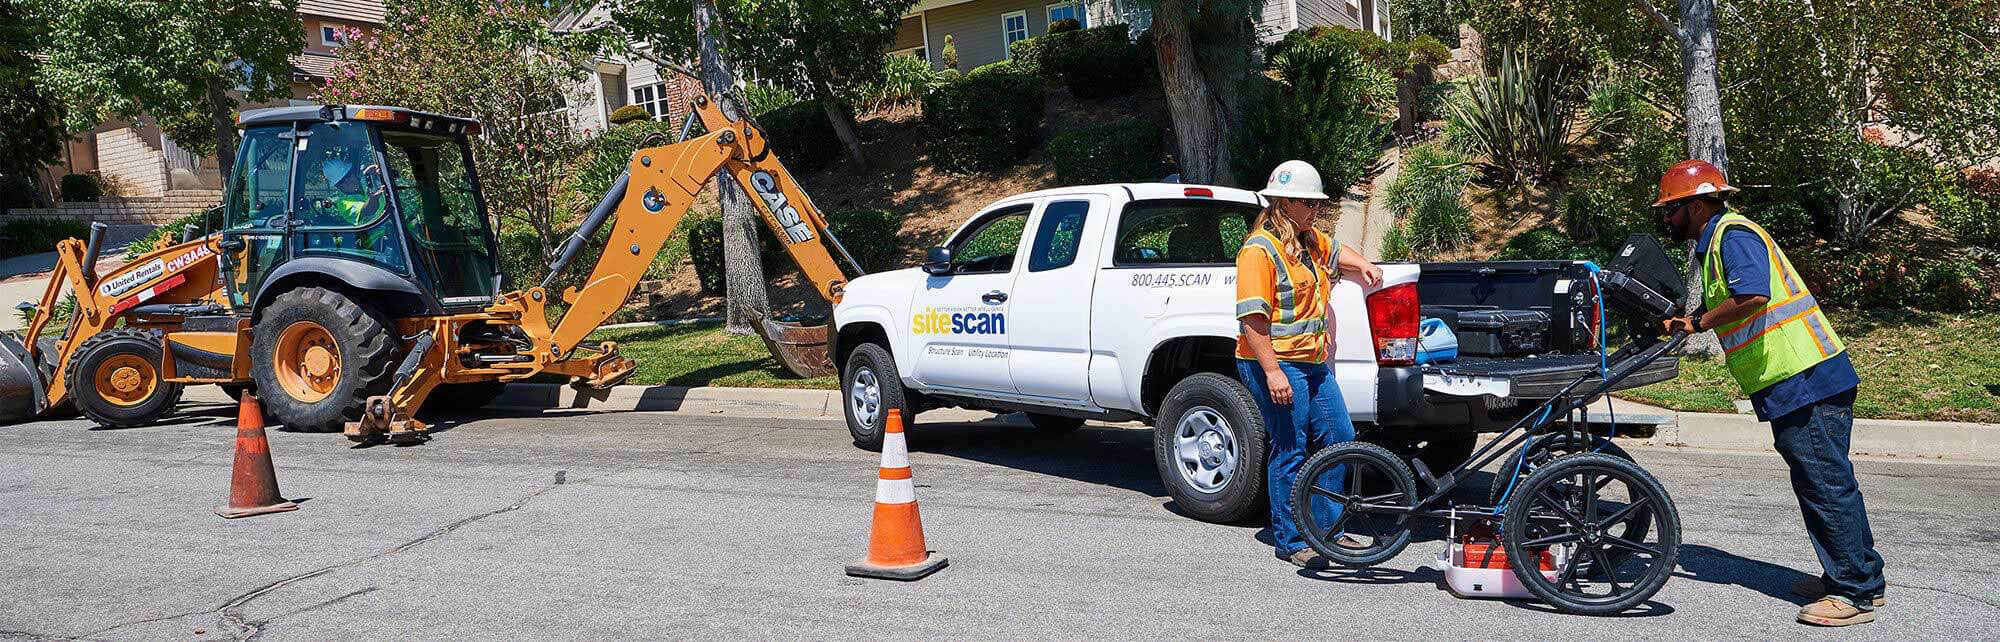 We locate all underground utilities. Residential, industrial and commercial experts